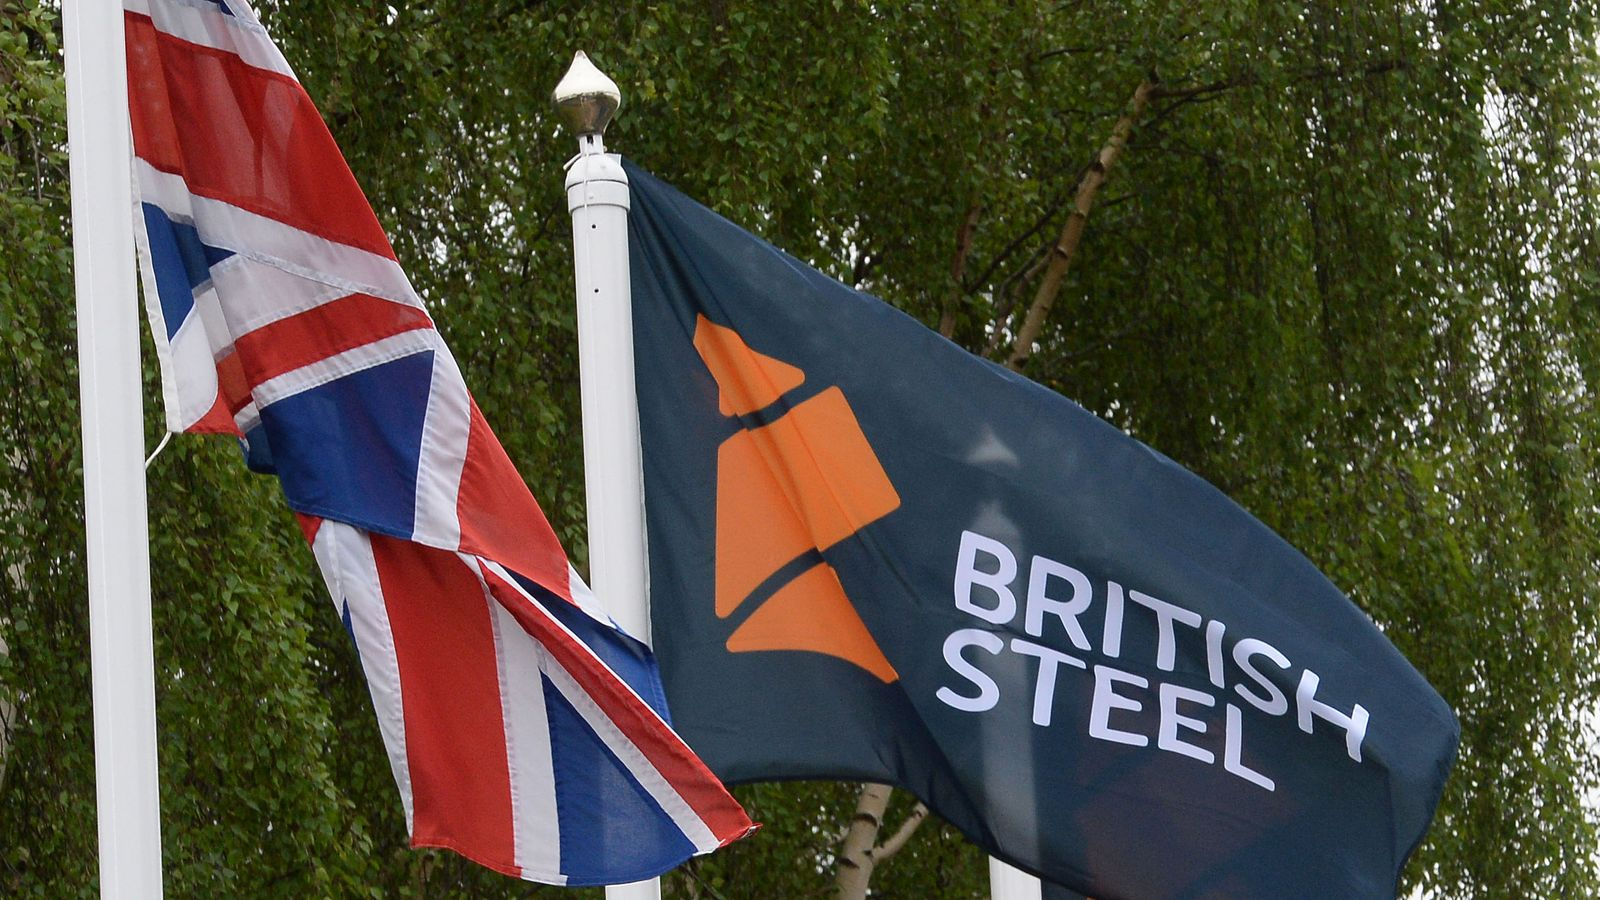 British Steel arm engineers sale to France's Systra